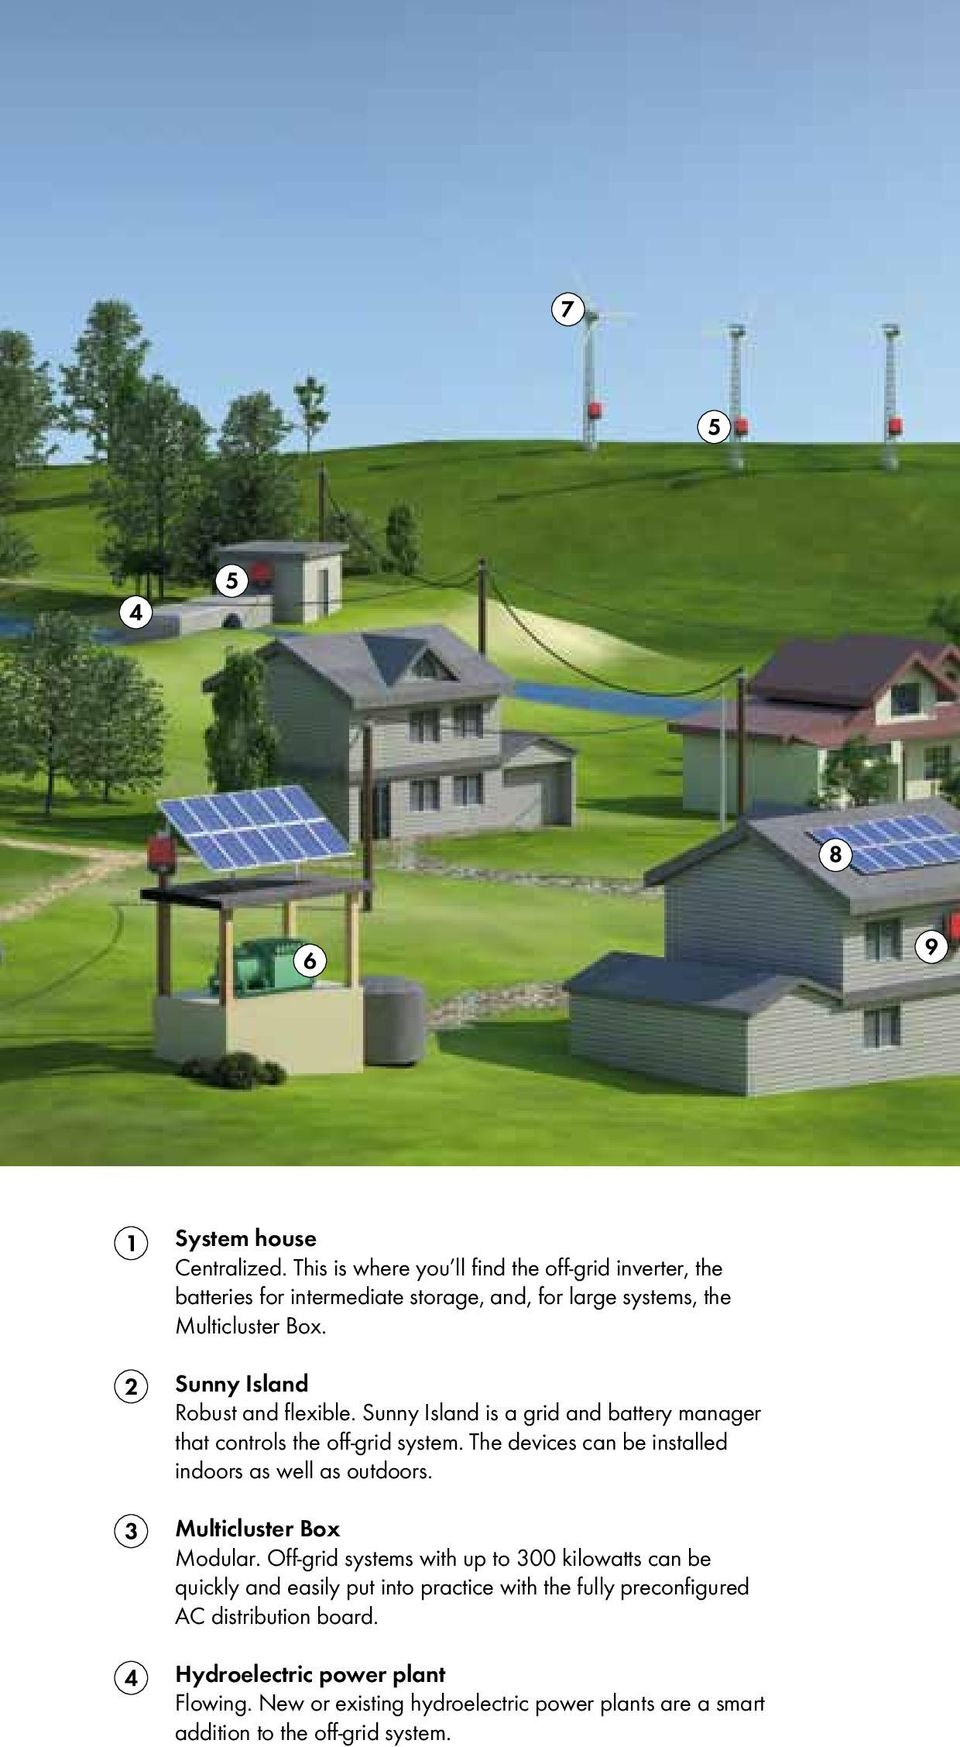 Sunny Island Robust and flexible. Sunny Island is a grid and battery manager that controls the off-grid system.